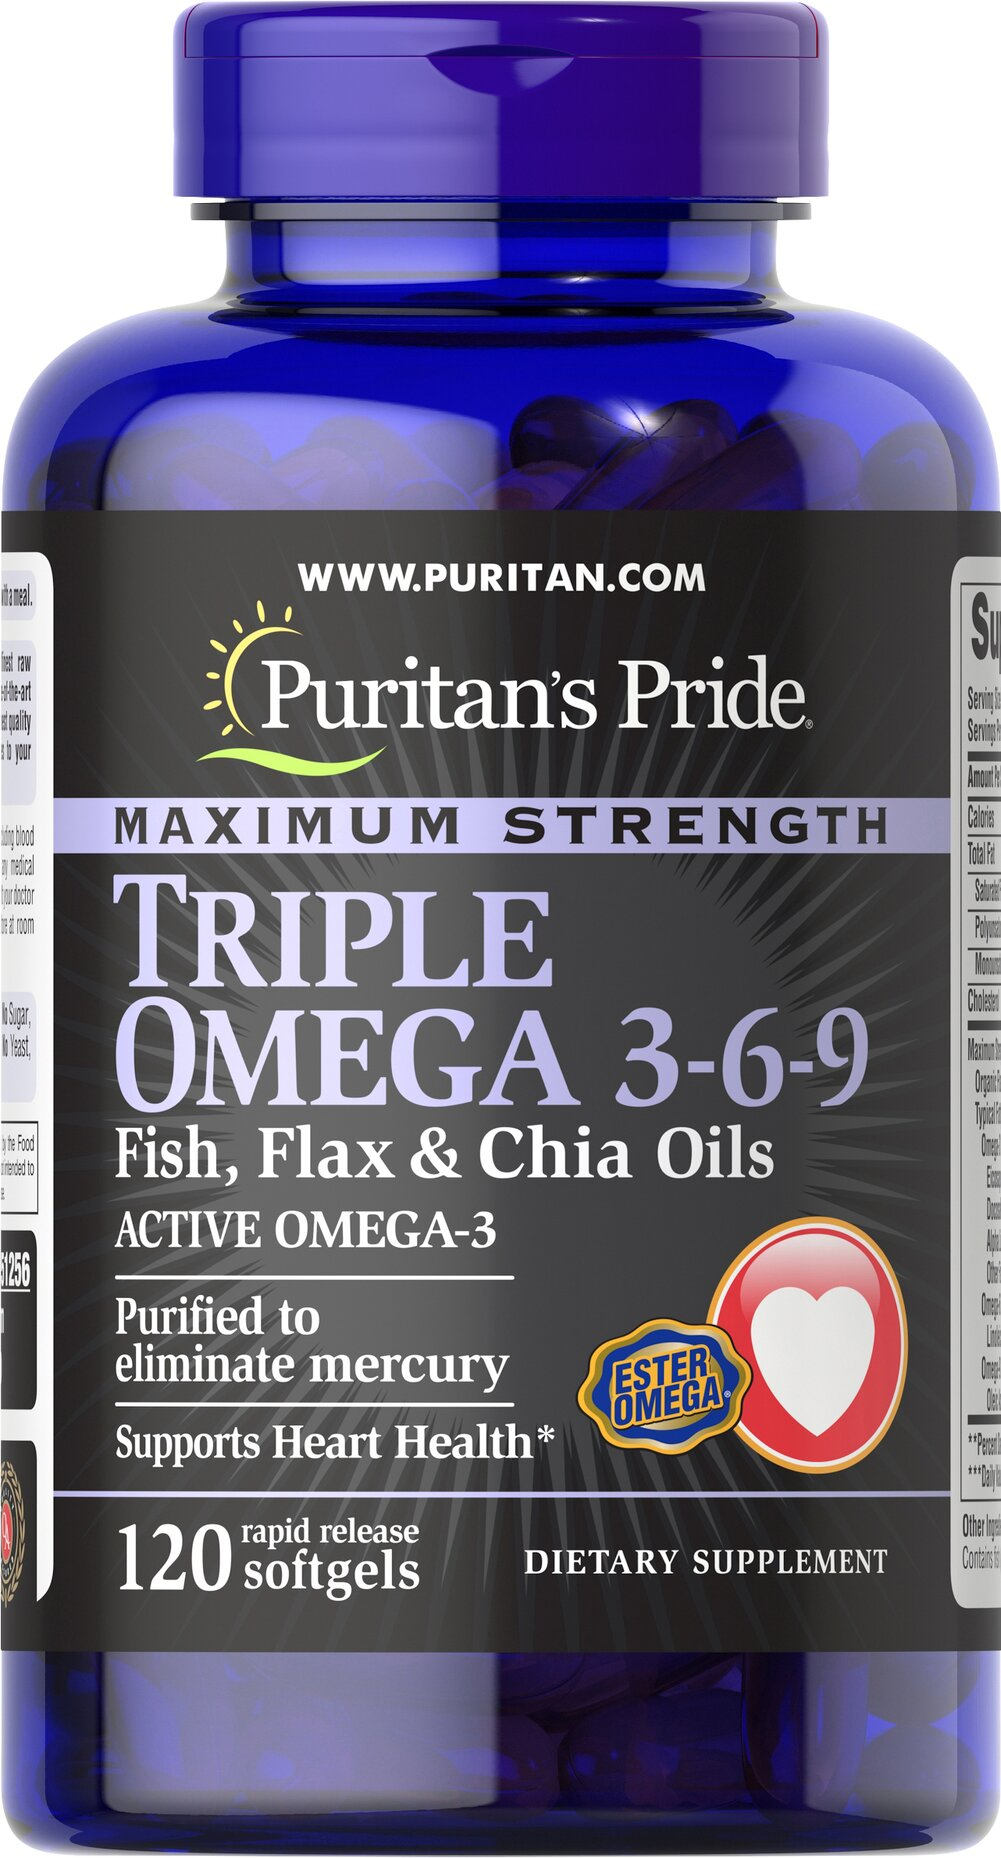 Maximum Strength Triple Omega 3-6-9 Fish, Flax & Chia Oils  120 Softgels  $22.39